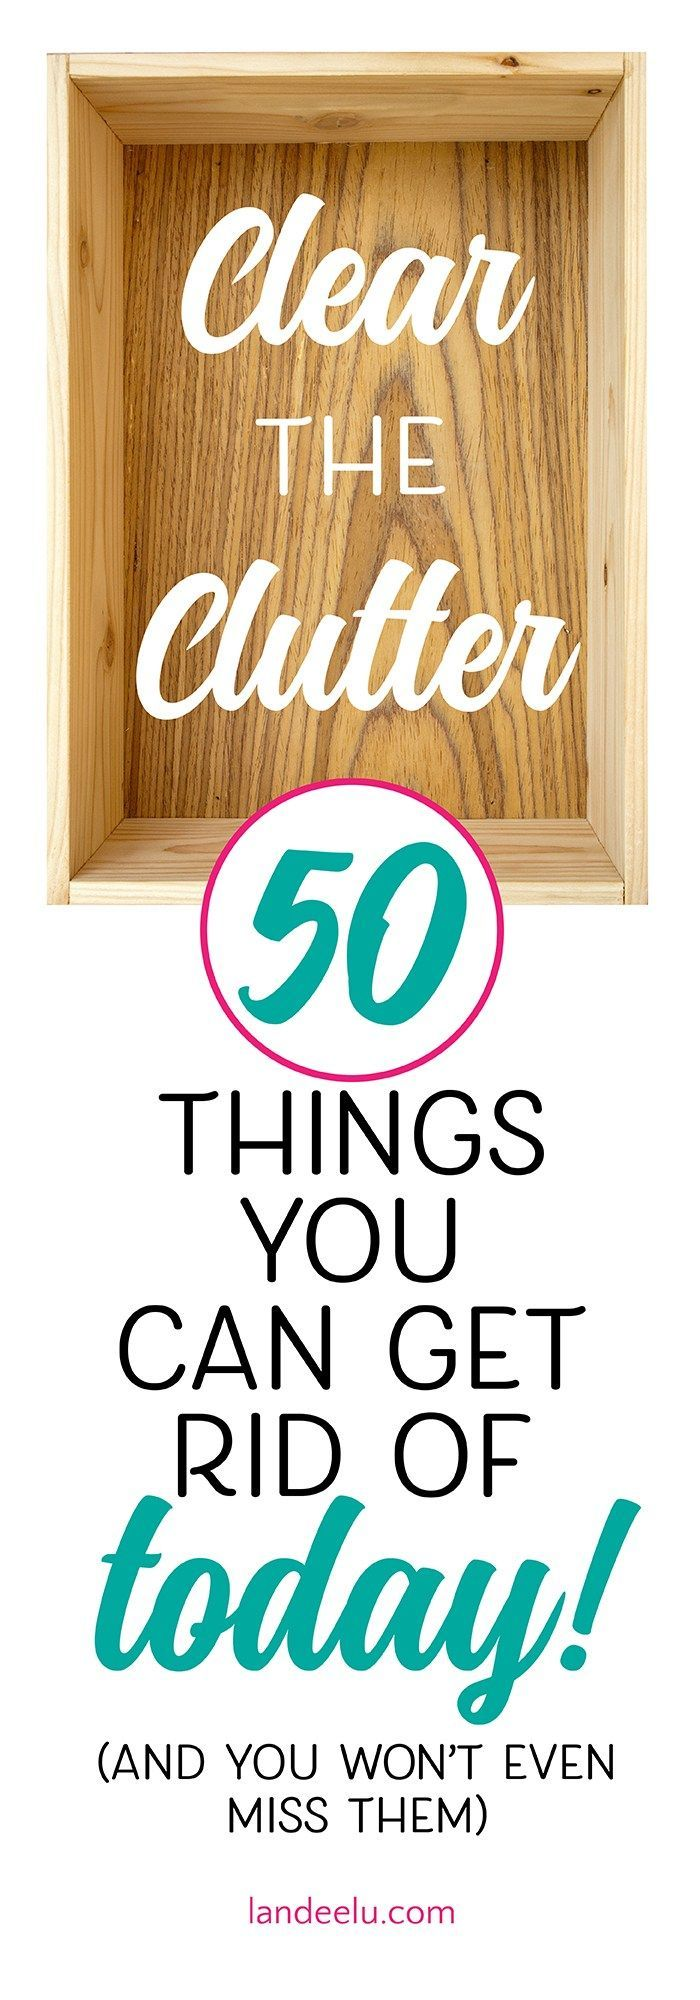 Time to declutter and create some space! 50 things to get rid of today and get y...